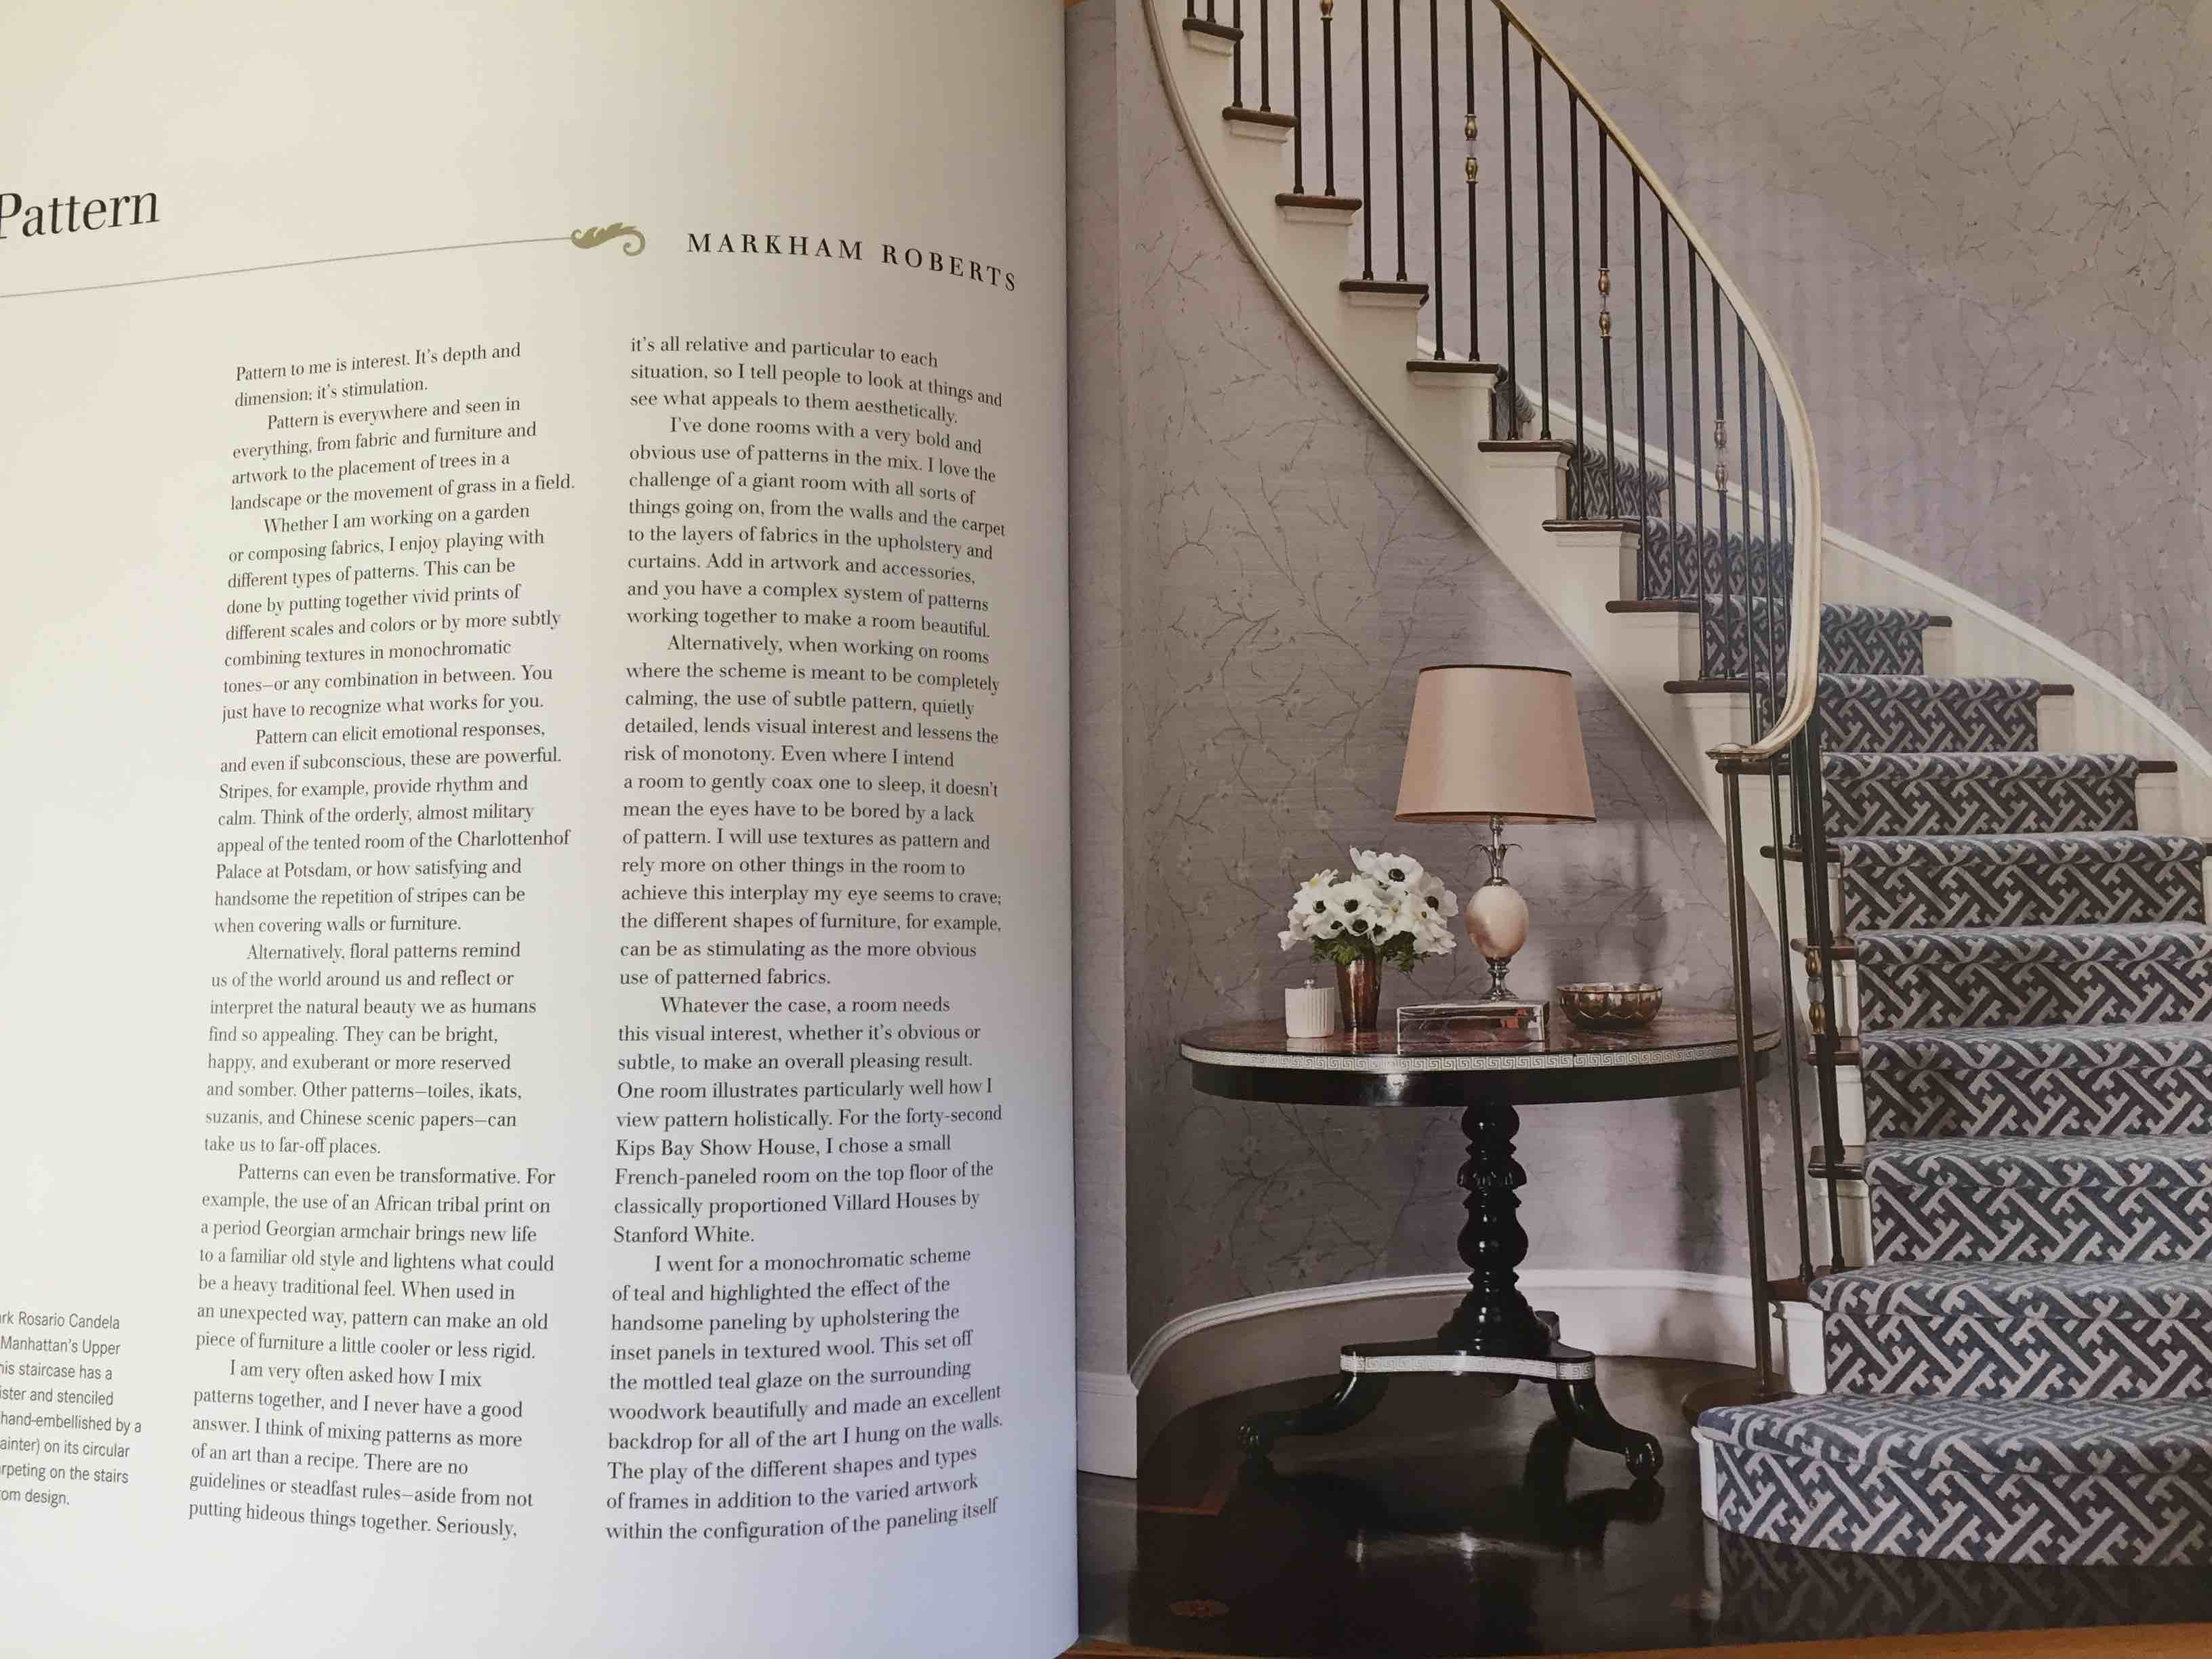 Interior-design-masterclass-carl-dellatore-books-pattern